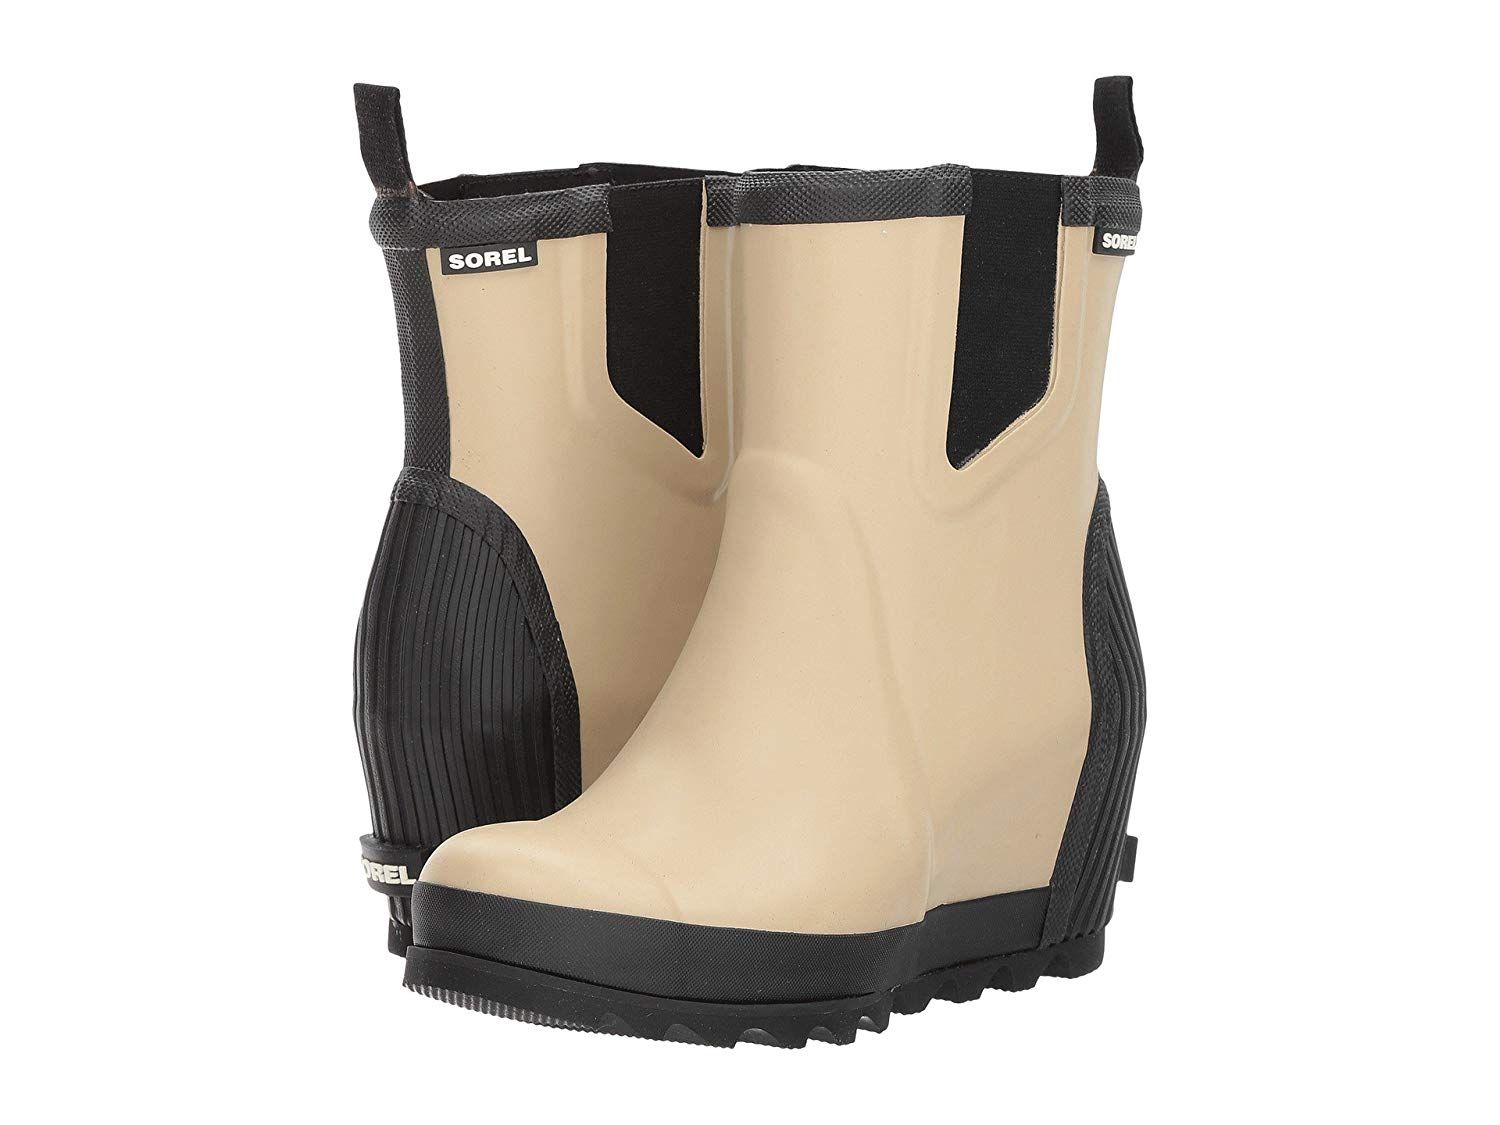 84b997b5735 Sorel Womens Joan Rain Wedge Chelsea   Many thanks for seeing our picture.  (This is our affiliate link)  womensmidcalfboots